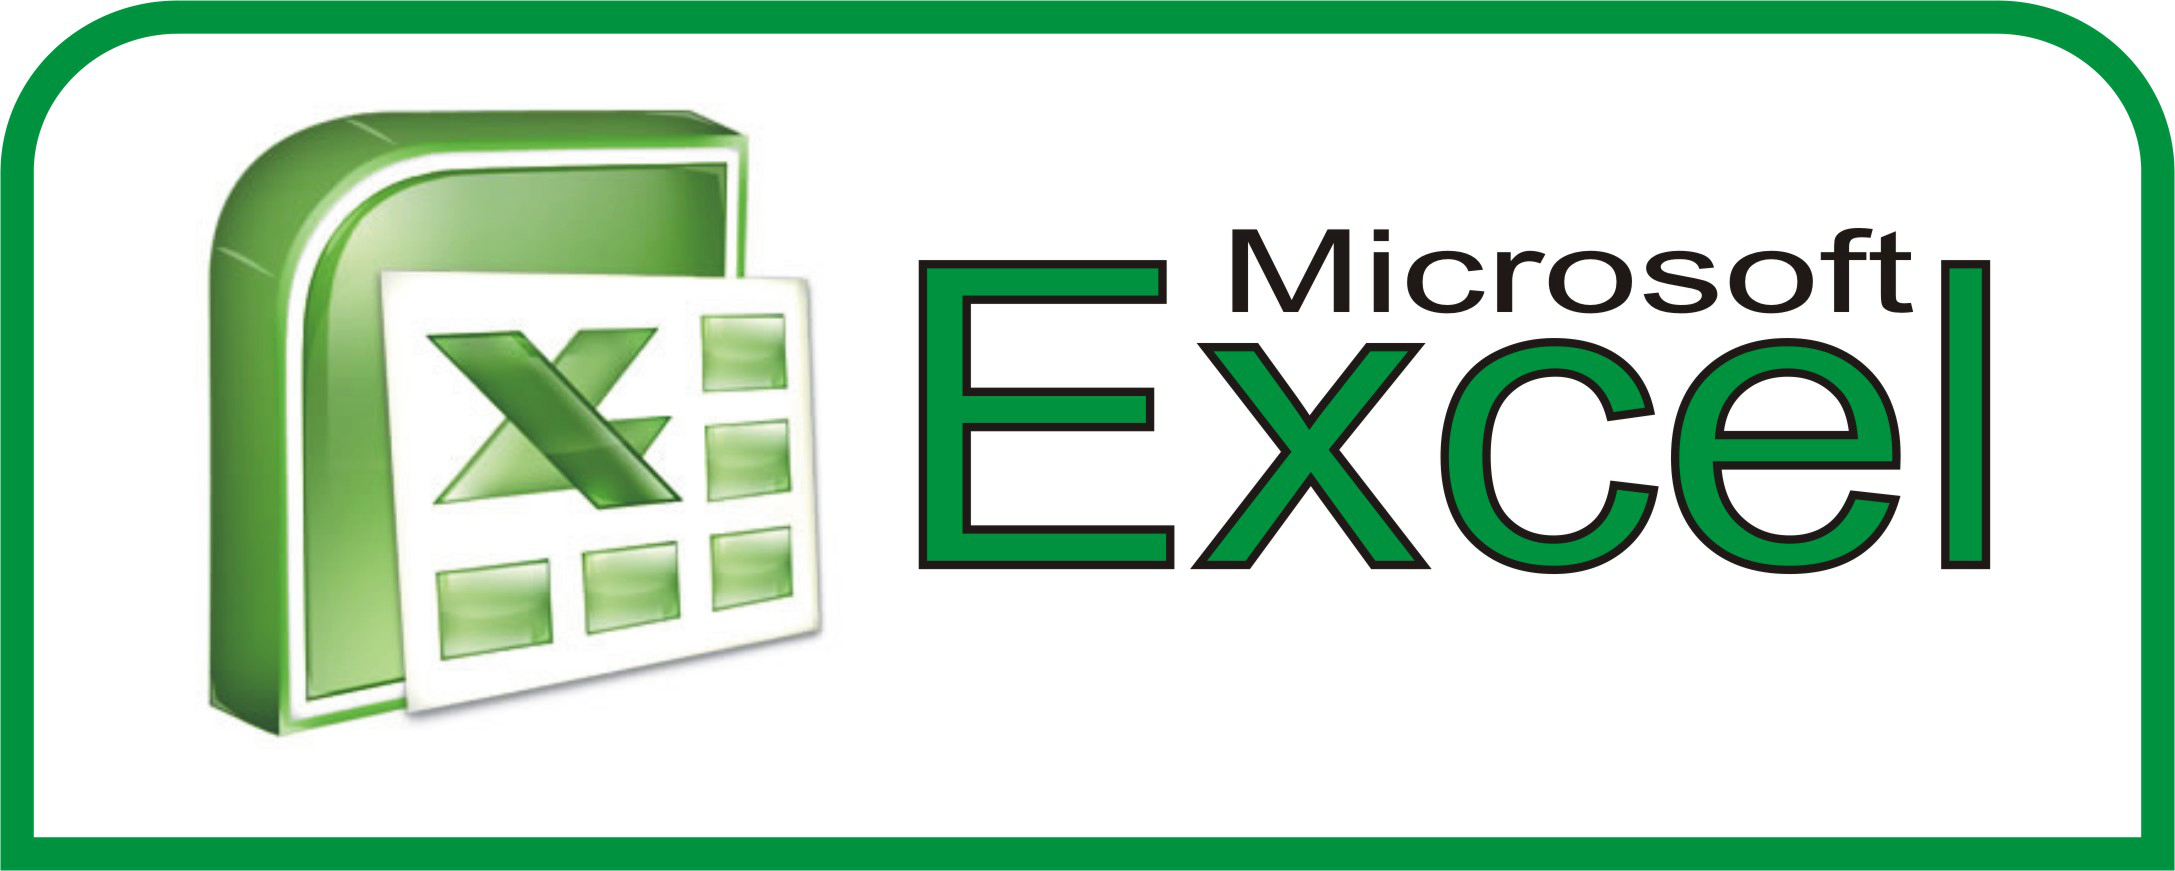 Ediblewildsus  Marvellous  Excel Shortcuts You Probably Didnt Know About  Techdissected With Hot Vba Button Excel Besides Microsoft Excel Adding Formula Furthermore Embed Excel With Lovely How To Make Heat Map In Excel Also Excel Shortcut Select Row In Addition Excel Number Format Code And Excel Bike As Well As Random Pick Excel Additionally Credit Card Amortization Excel From Techdissectedcom With Ediblewildsus  Hot  Excel Shortcuts You Probably Didnt Know About  Techdissected With Lovely Vba Button Excel Besides Microsoft Excel Adding Formula Furthermore Embed Excel And Marvellous How To Make Heat Map In Excel Also Excel Shortcut Select Row In Addition Excel Number Format Code From Techdissectedcom